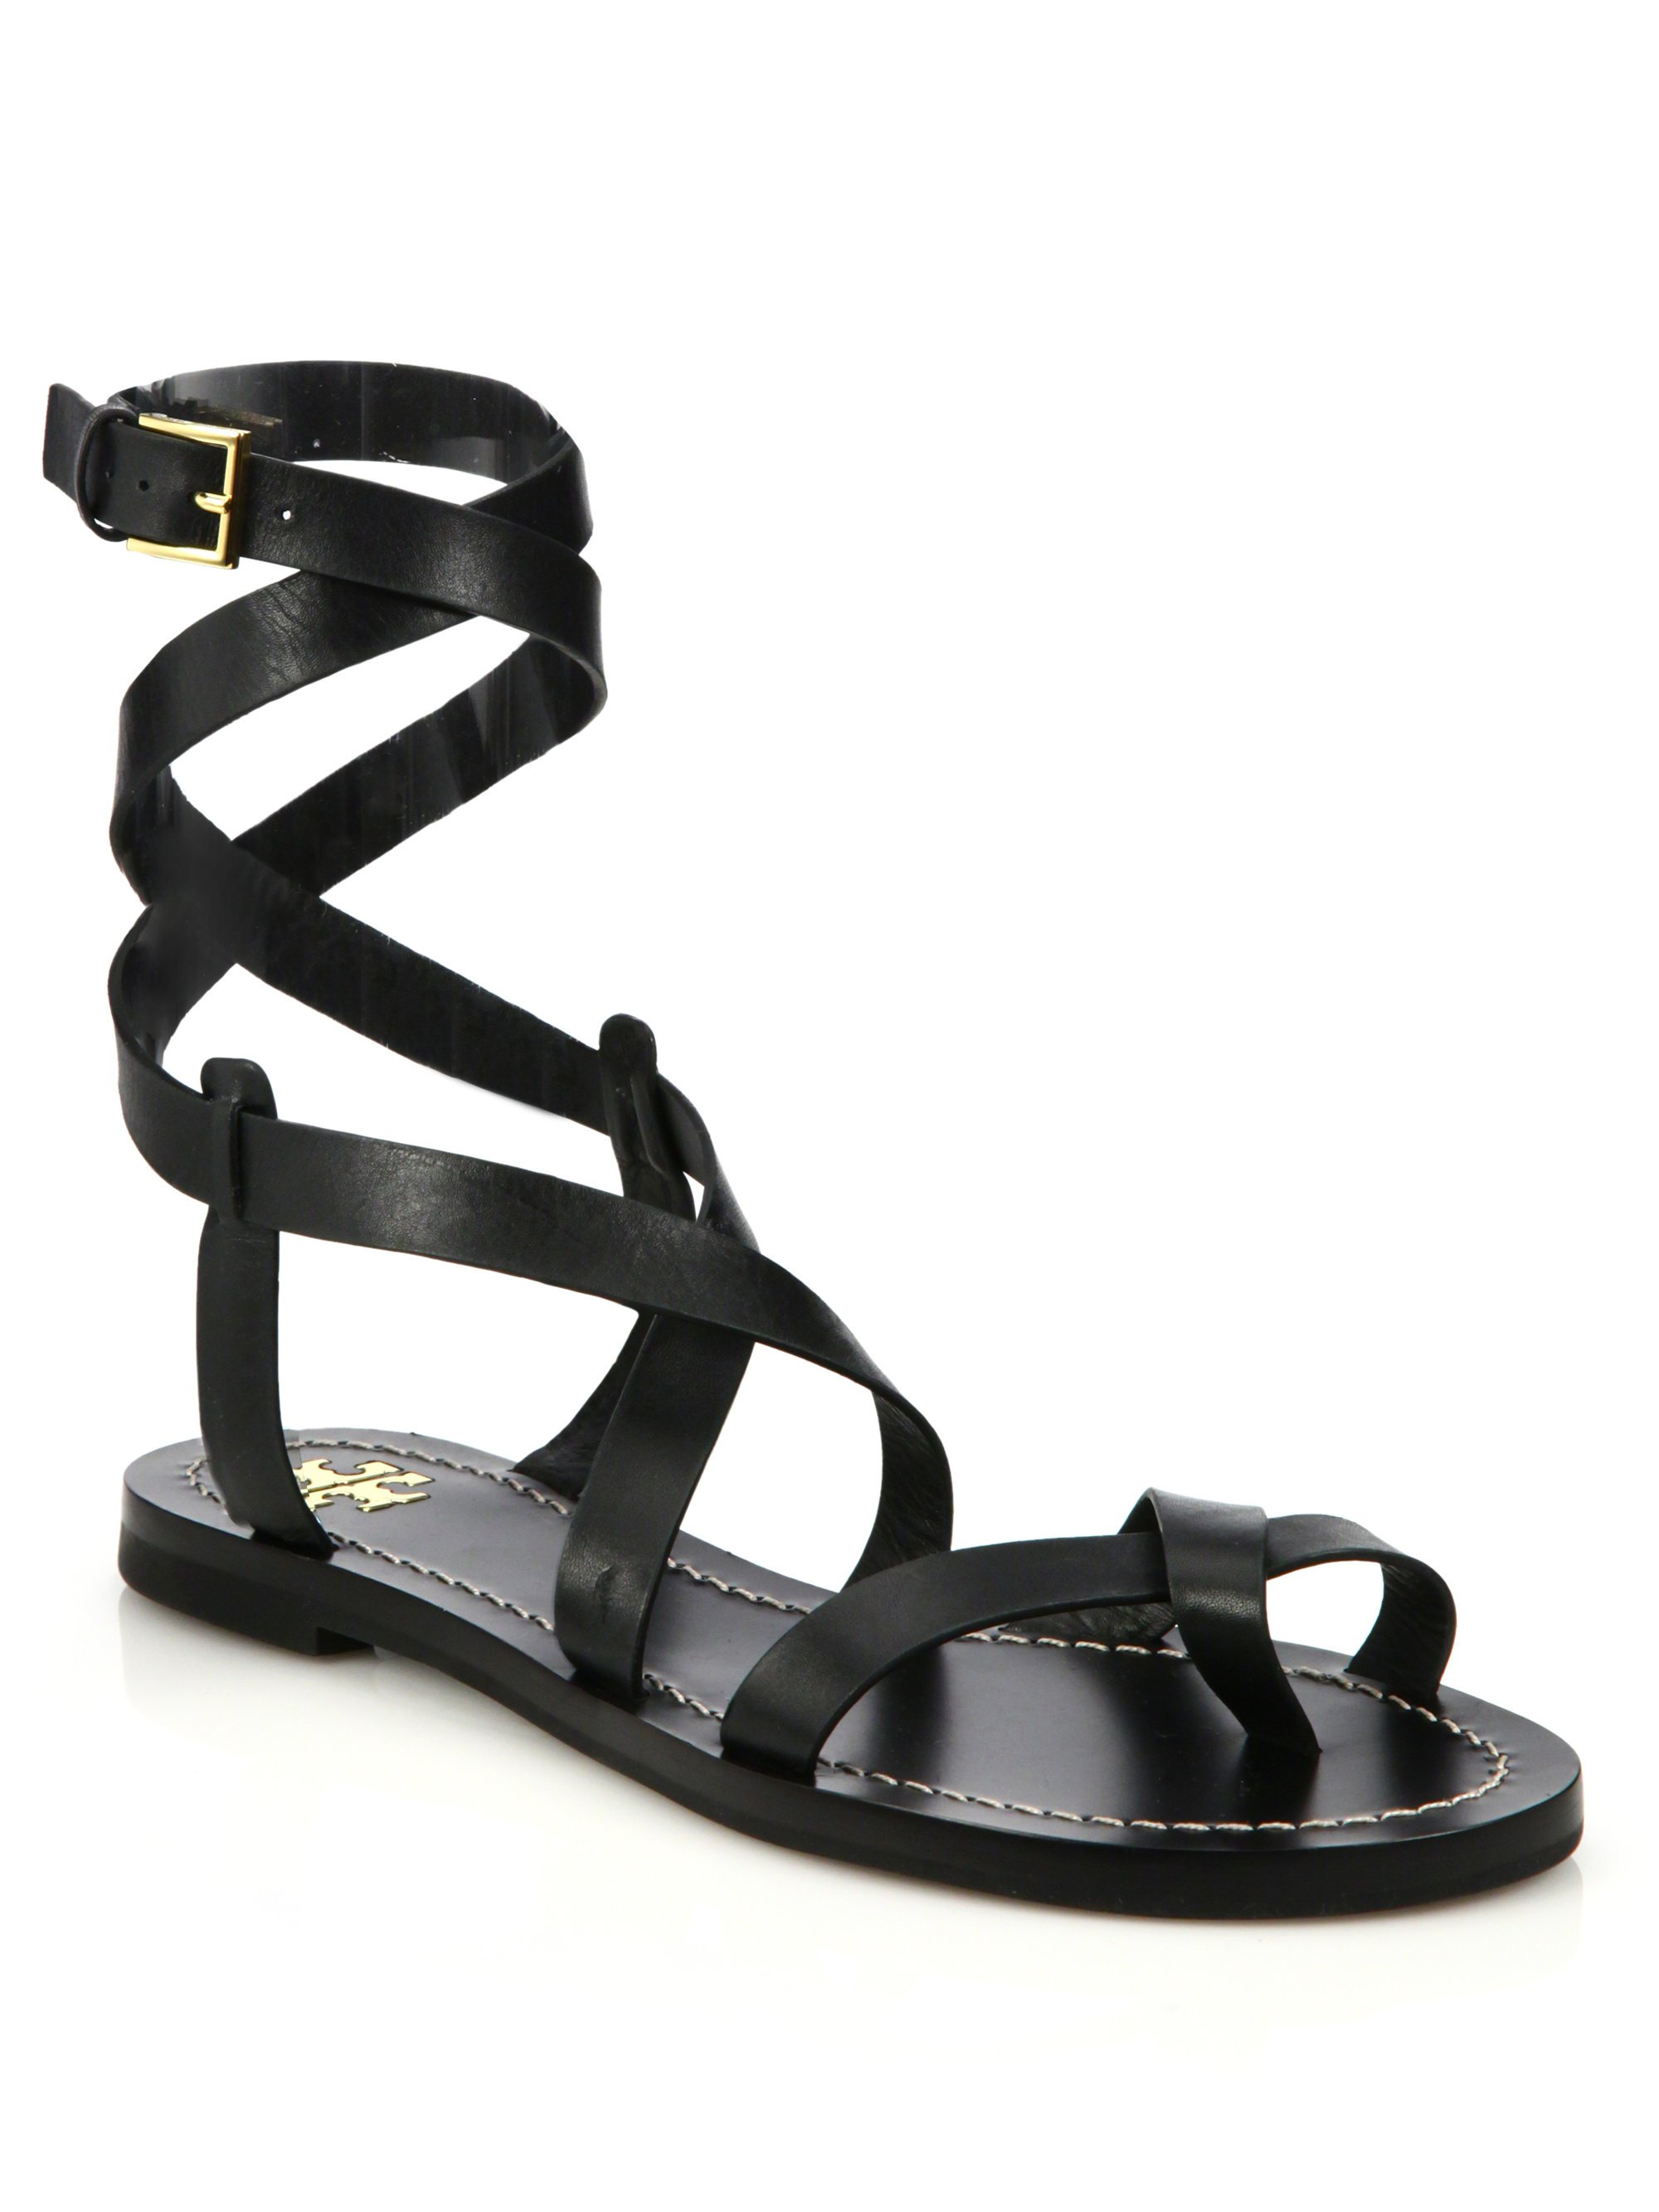 9355e6ca421 Lyst - Tory Burch Patos Crisscross Leather Sandal in Black